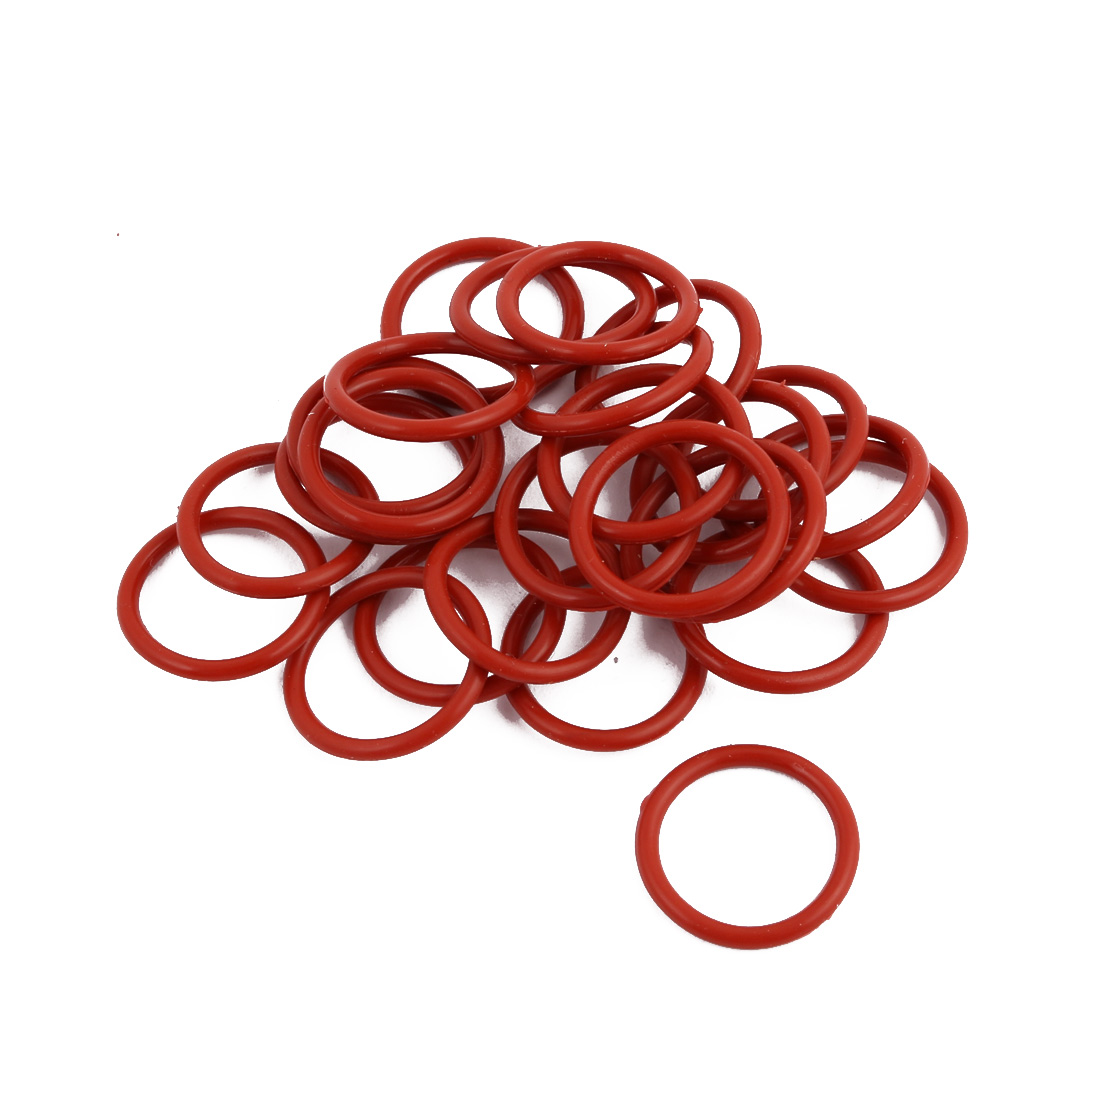 25Pcs Red Round Nitrile Butadiene Rubber NBR O-Ring 18mm OD 1.9mm Width